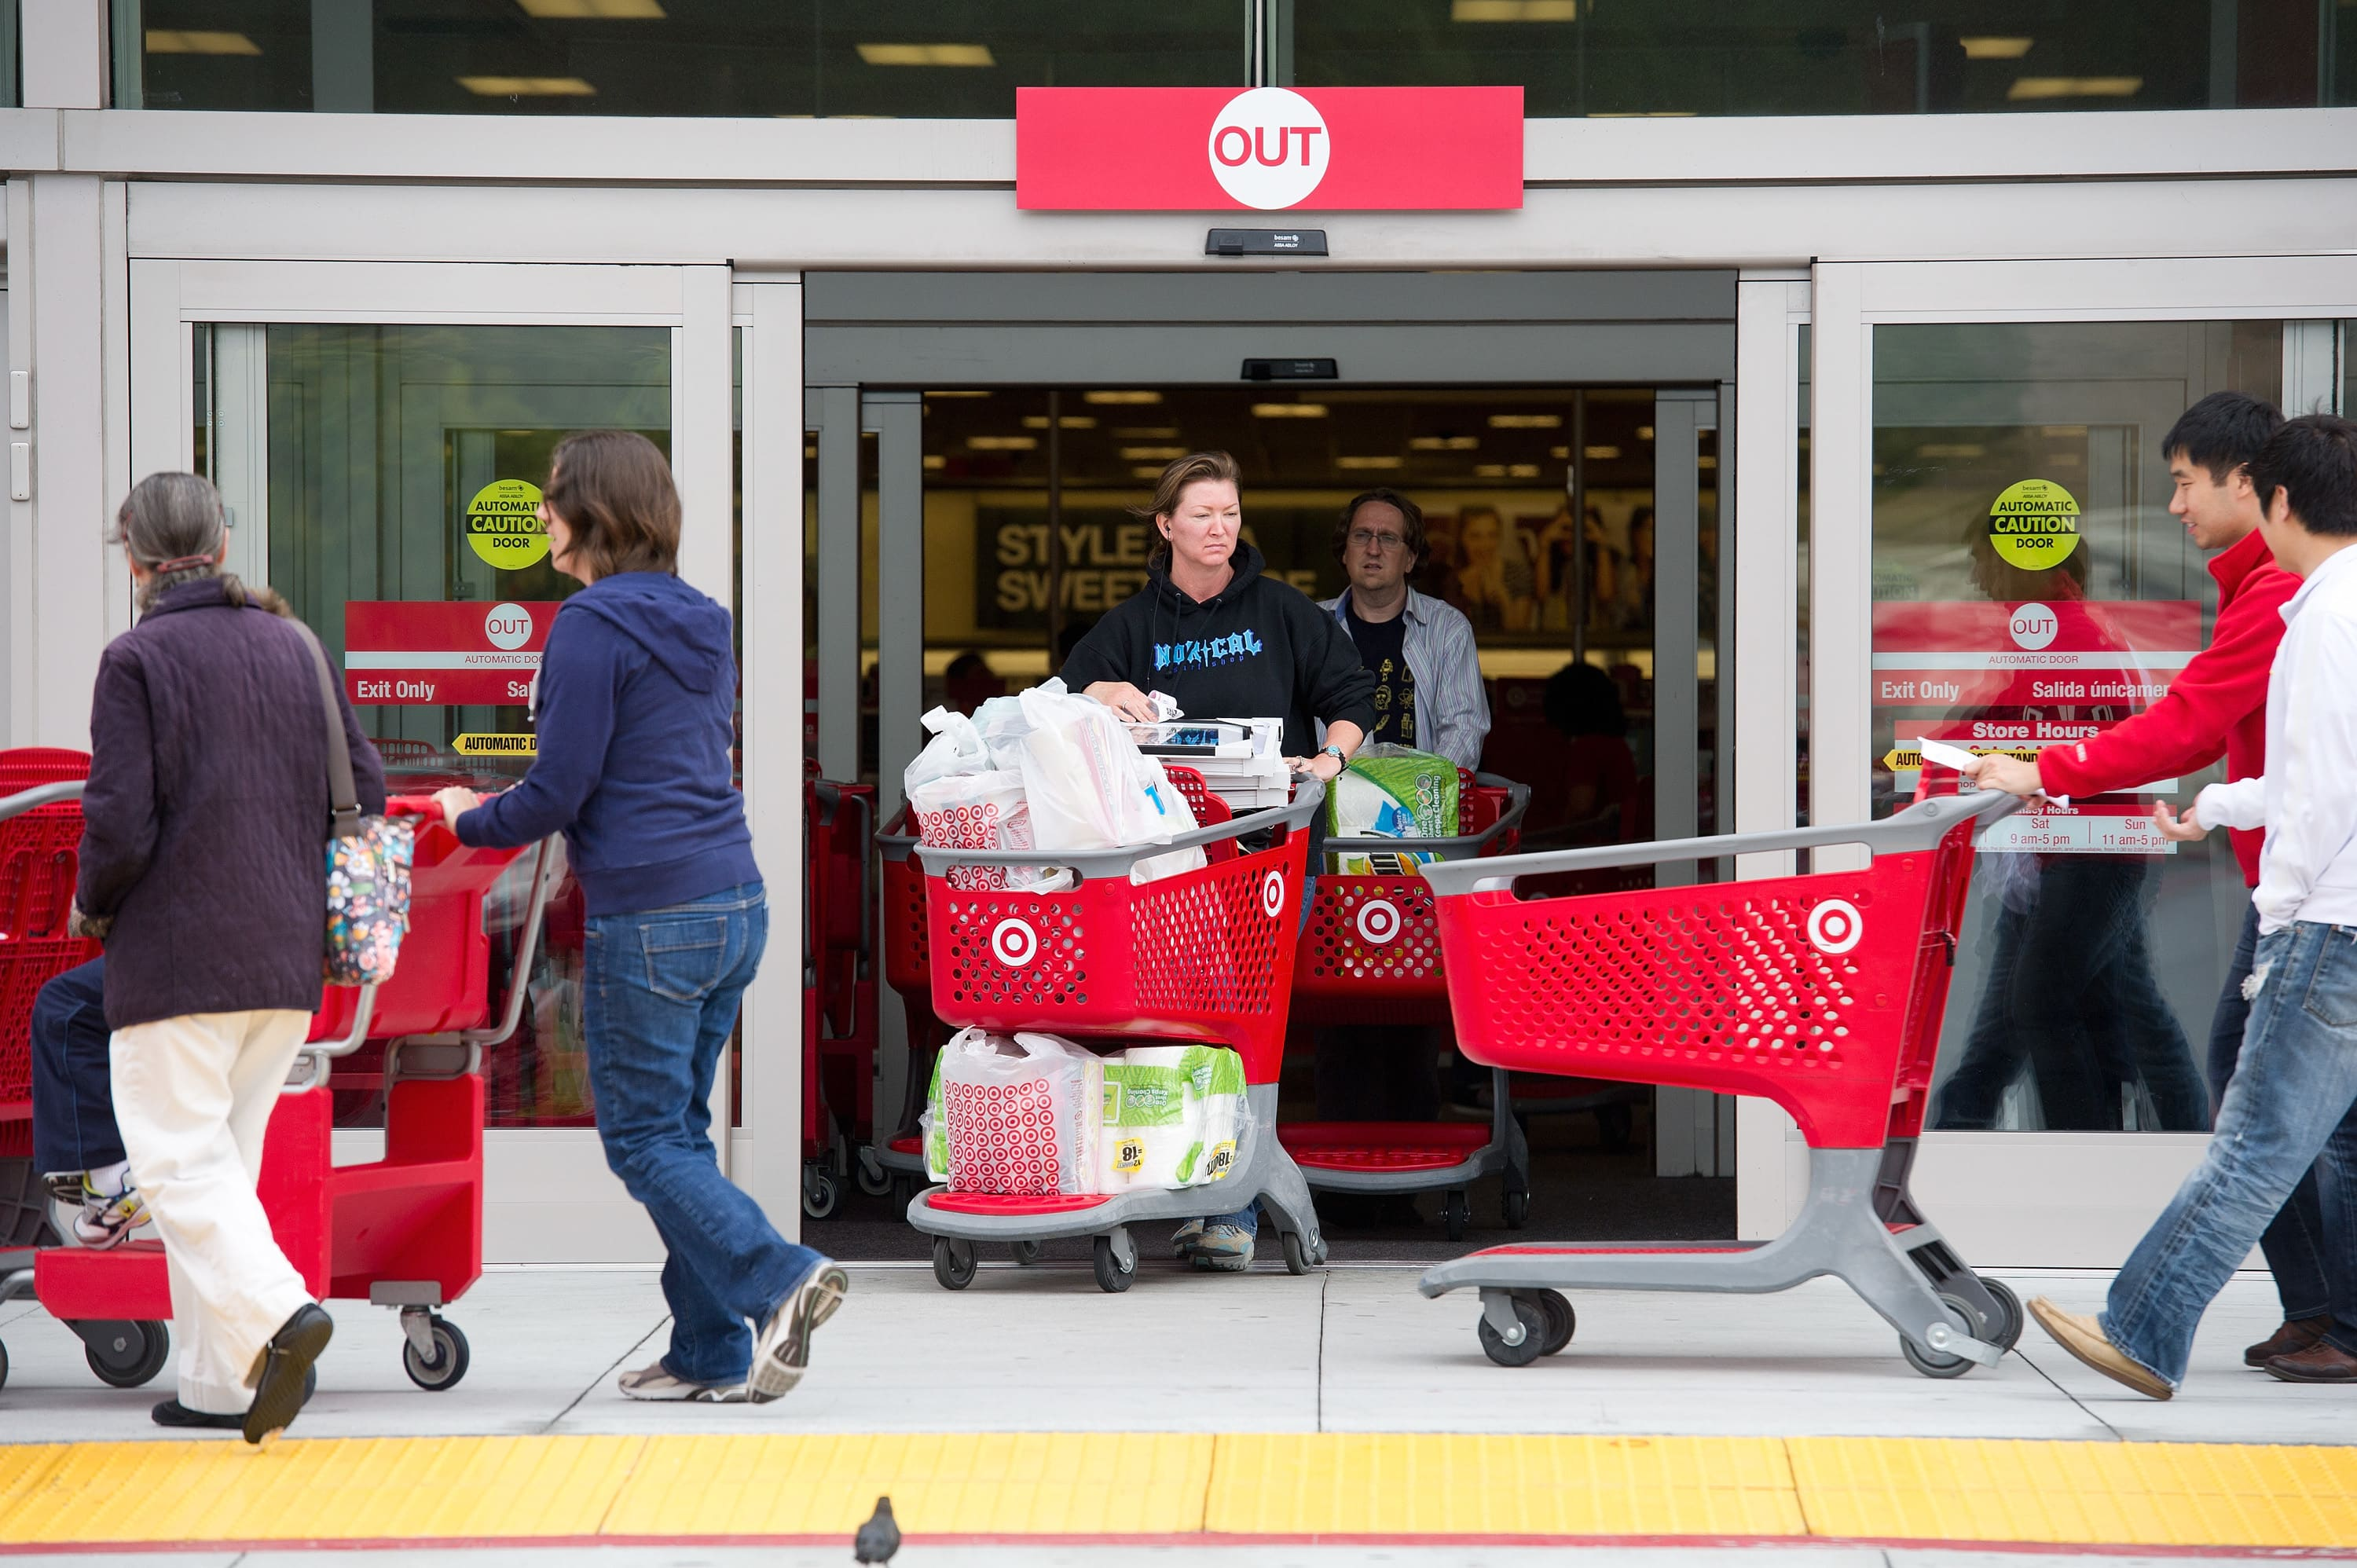 Target has 'deal days,' eBay plans a 'crash sale' as retailers take on Amazon's Prime Day